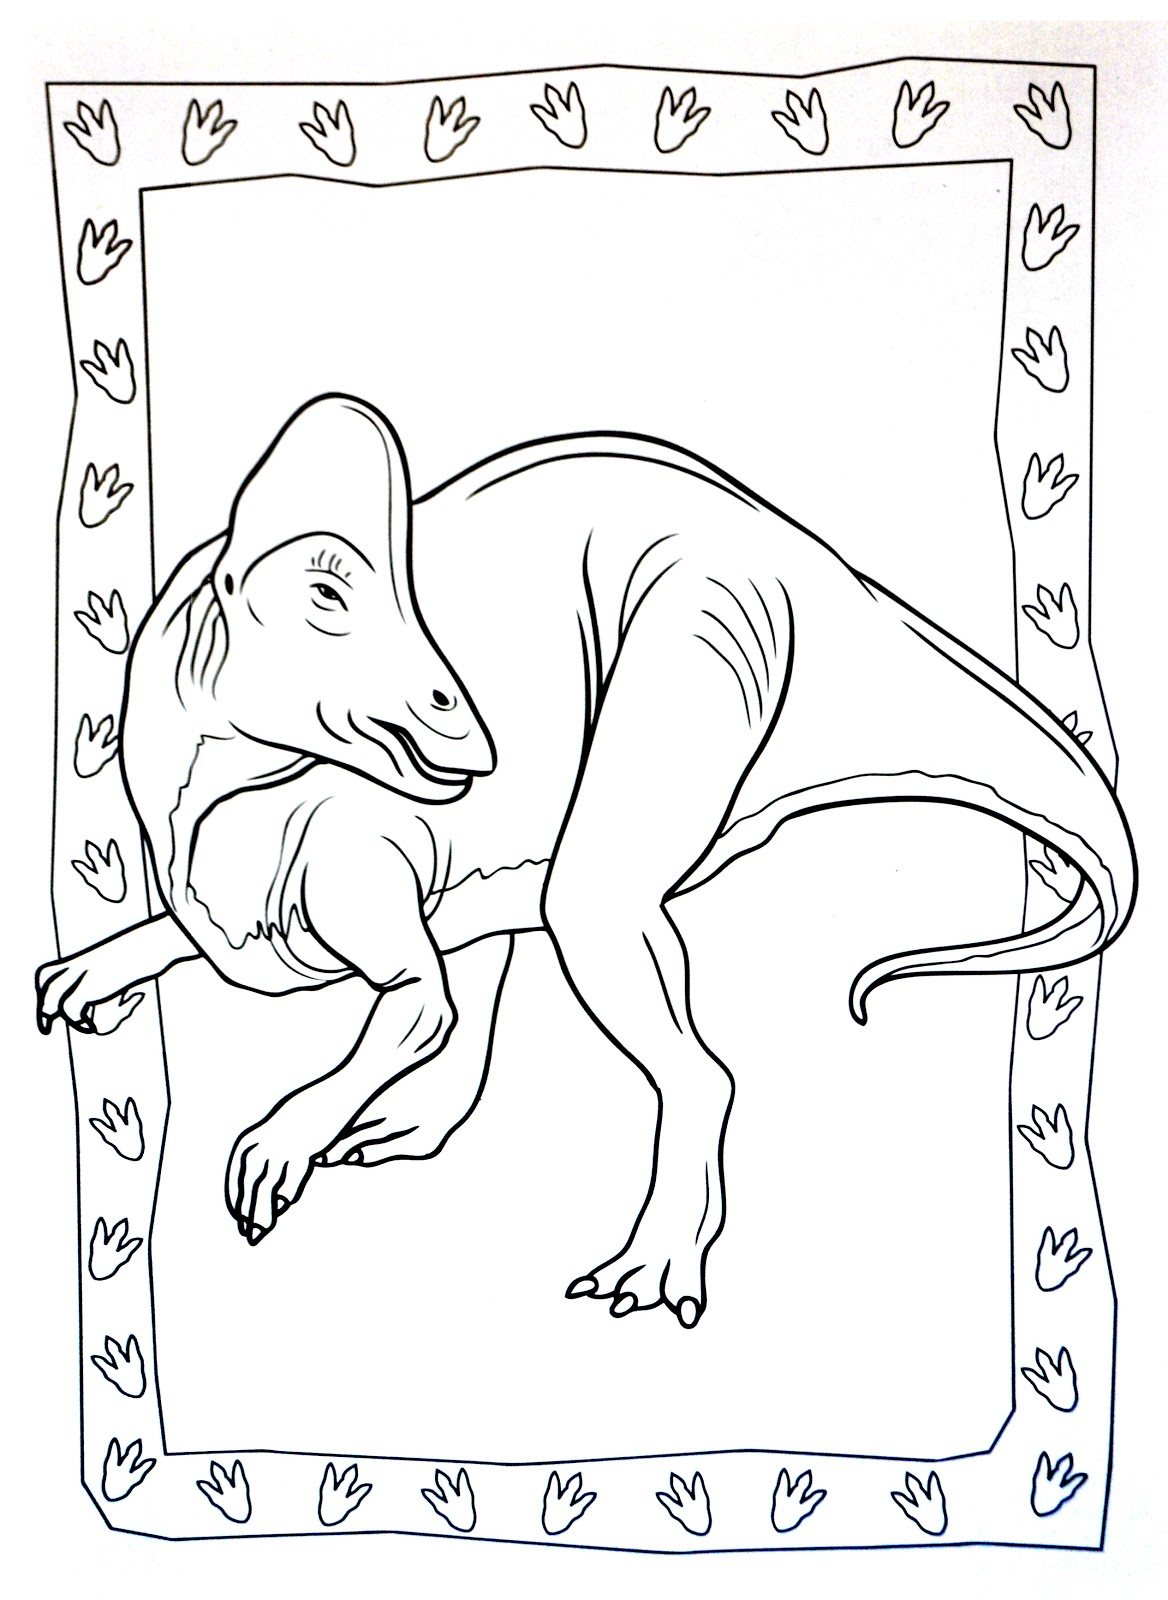 Dinosaurs coloring pages 42